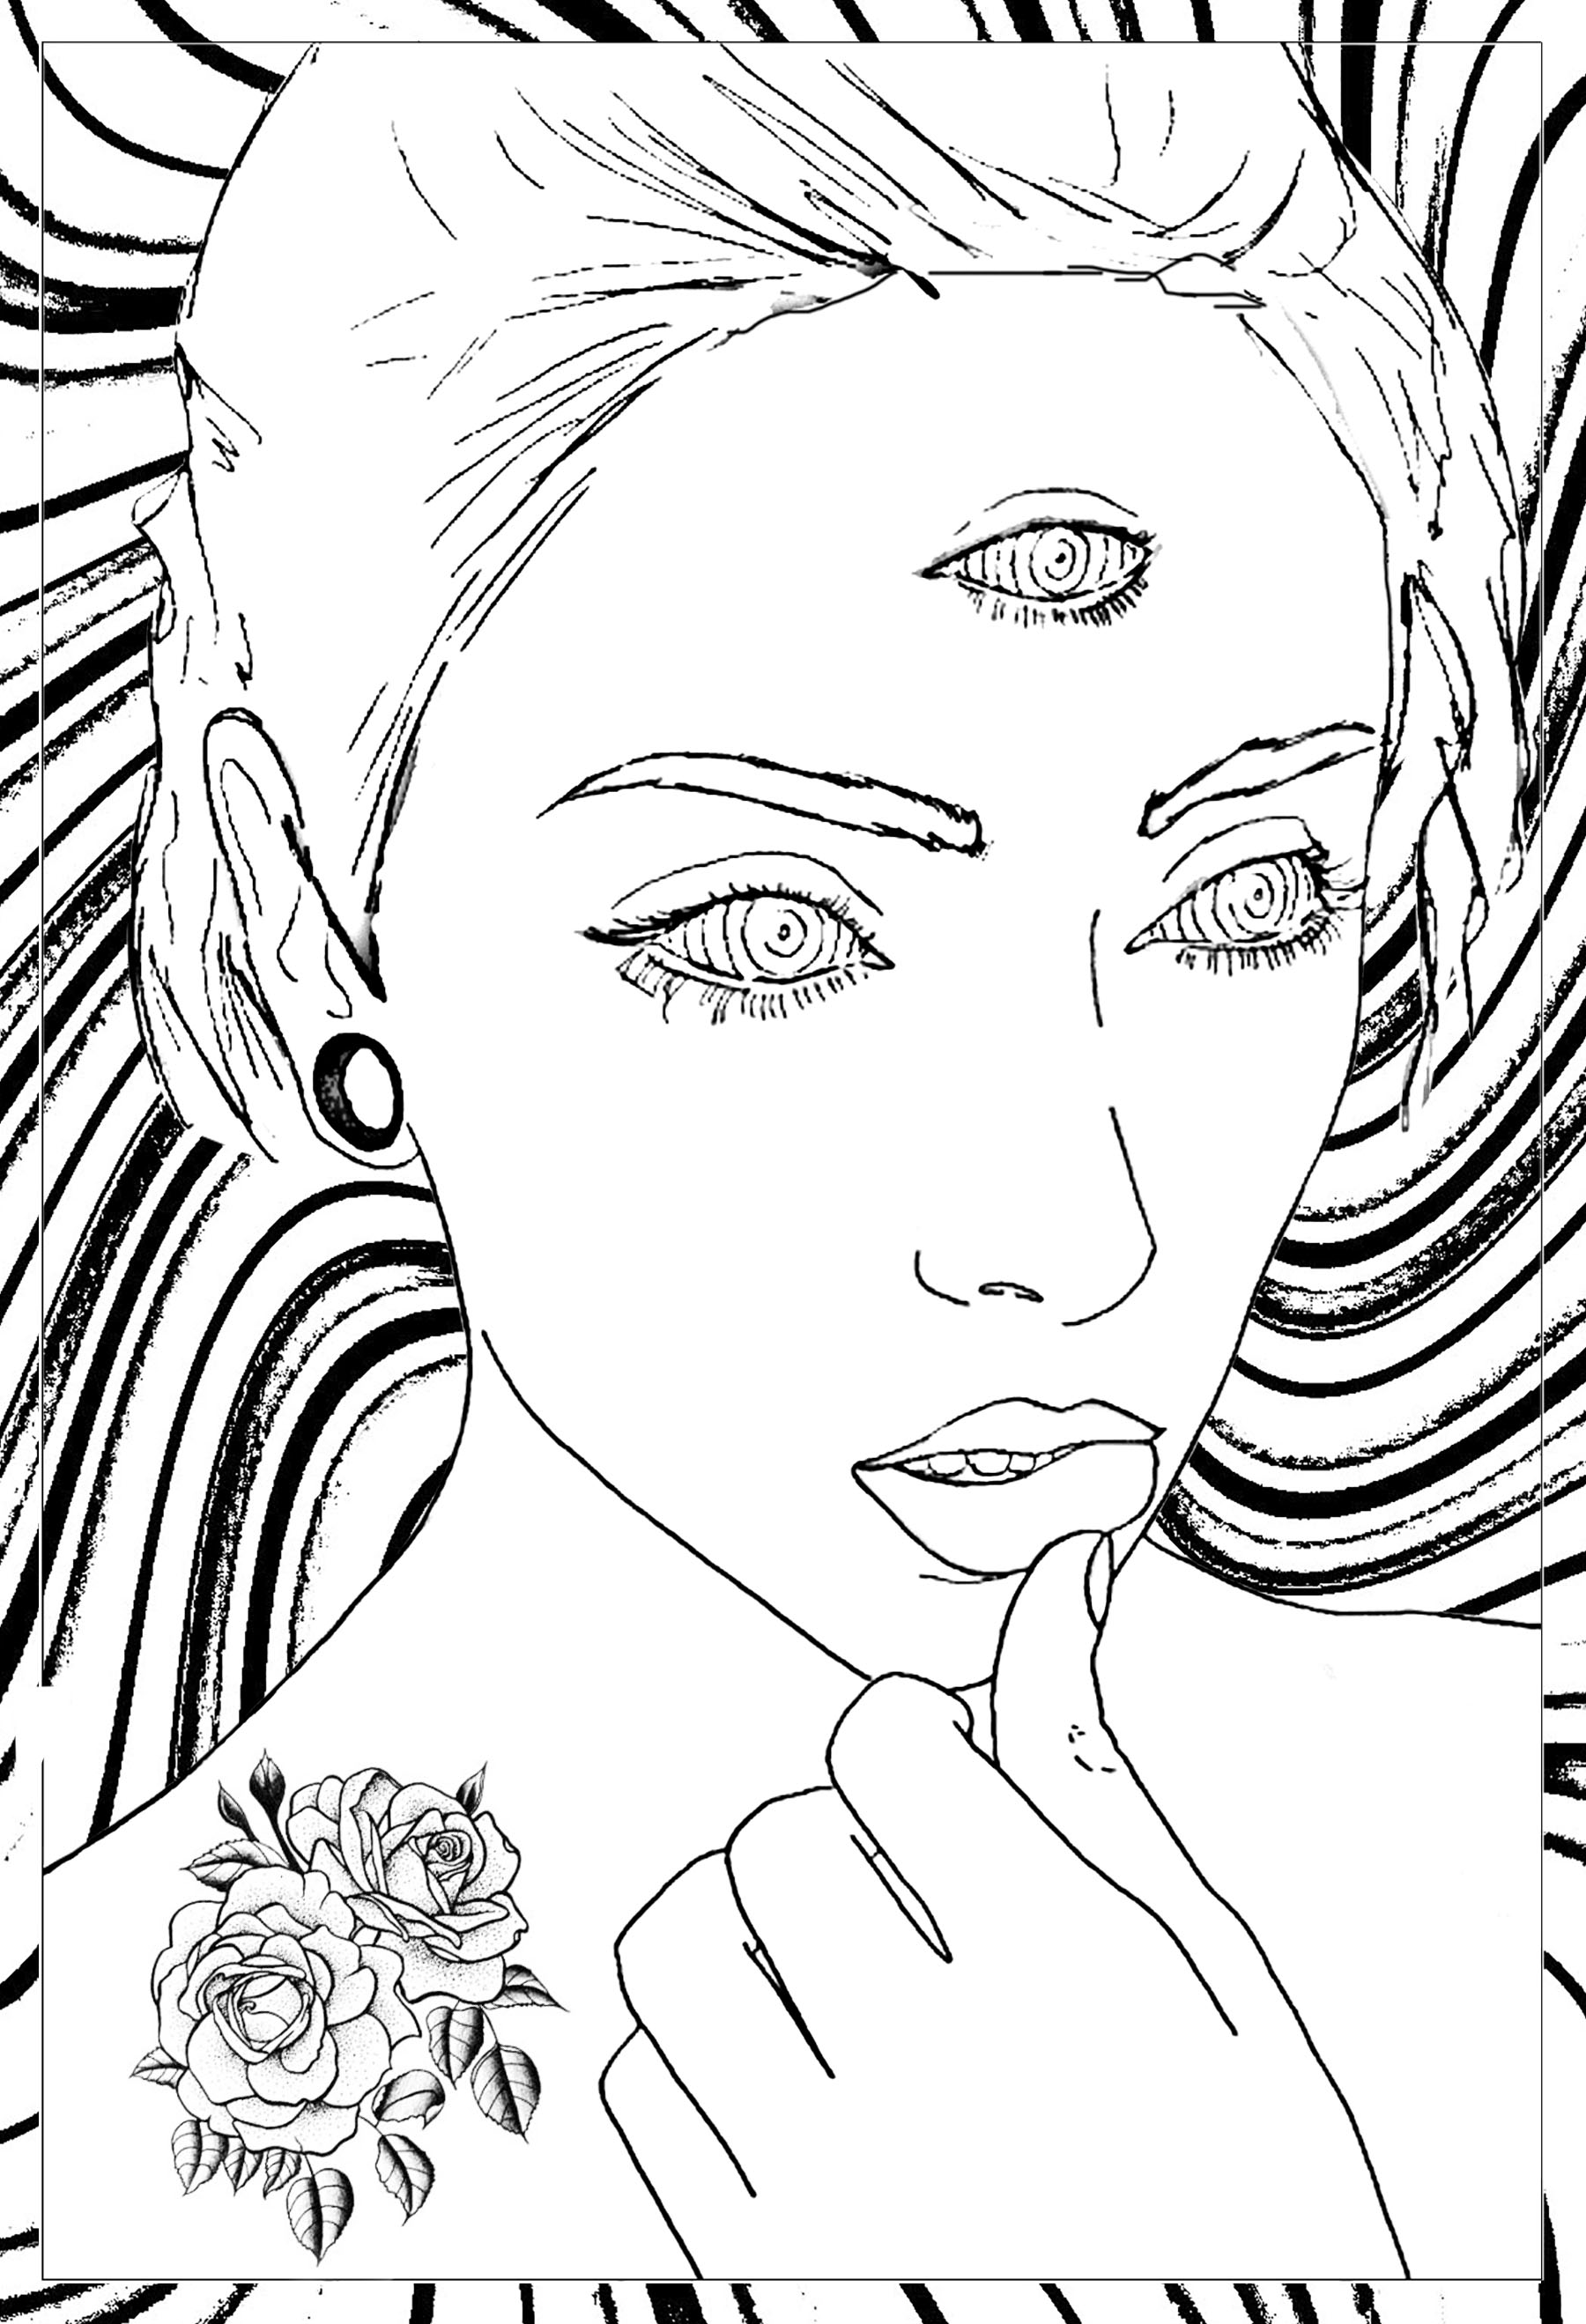 Awesome Coloring Pages For Adults At Getcolorings